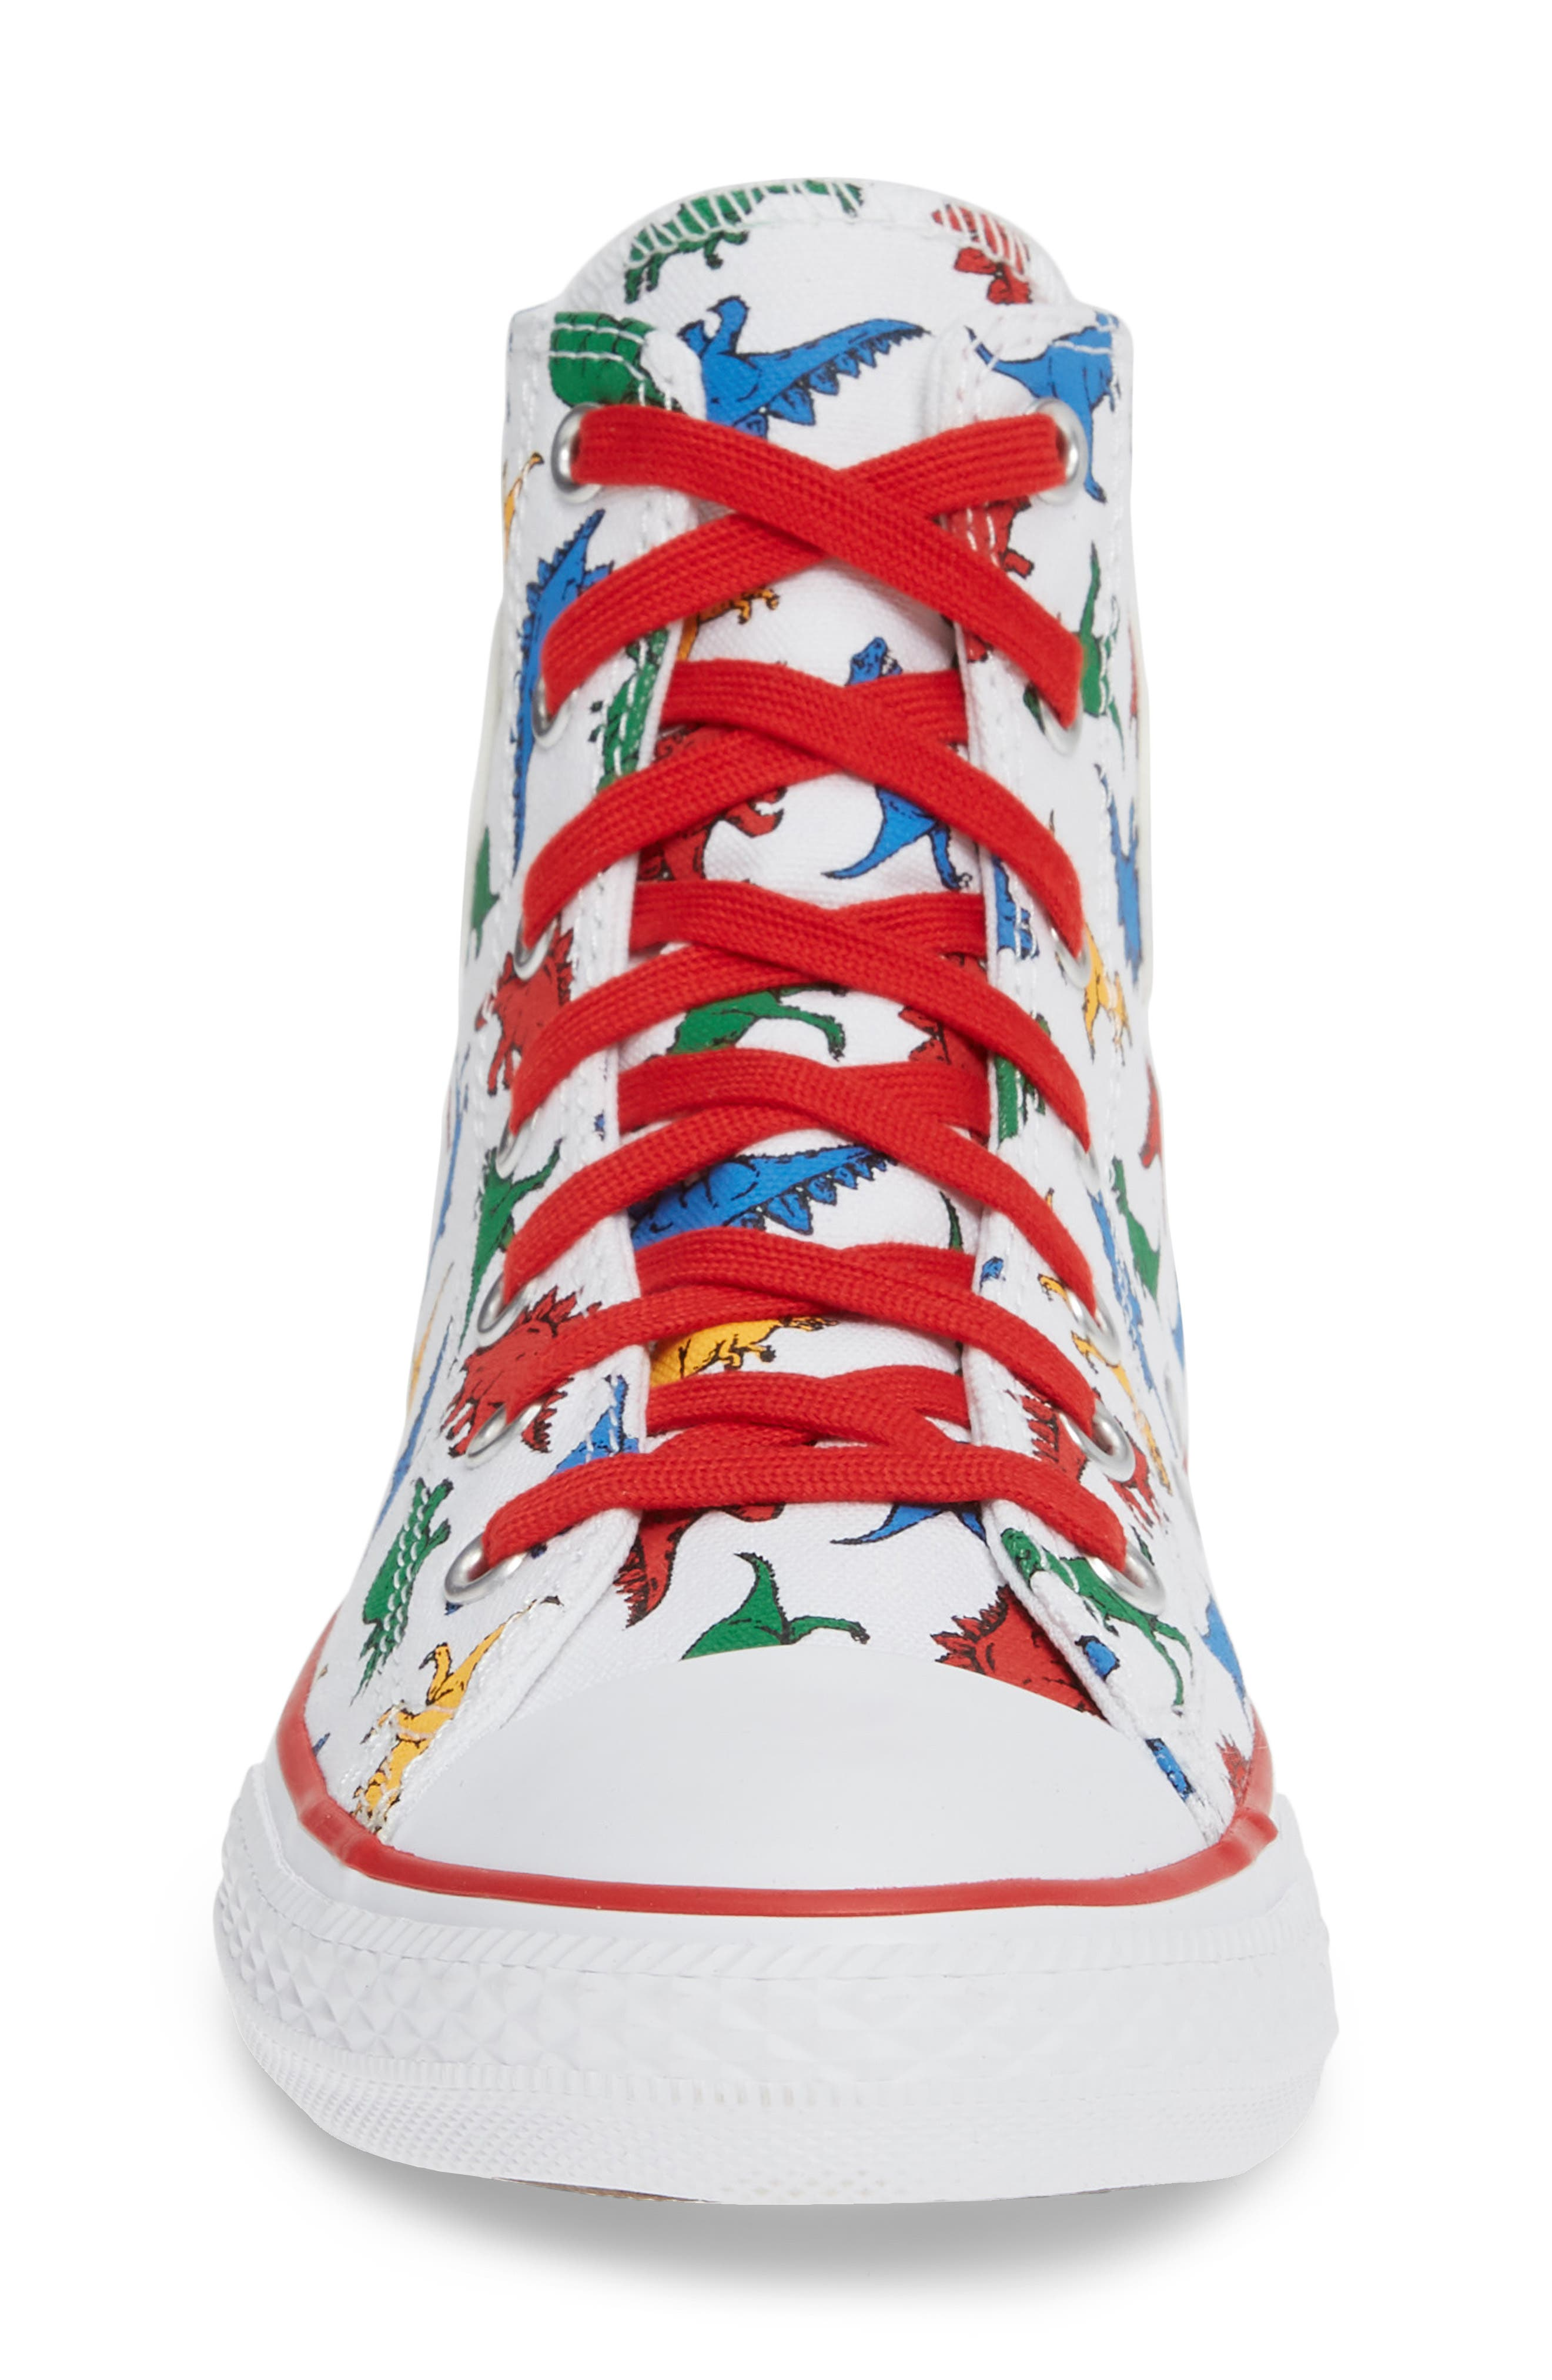 CONVERSE,                             Chuck Taylor<sup>®</sup> All Star<sup>®</sup> Dino High Top Sneaker,                             Alternate thumbnail 4, color,                             WHITE/ ENAMEL RED/ BLUE DINO